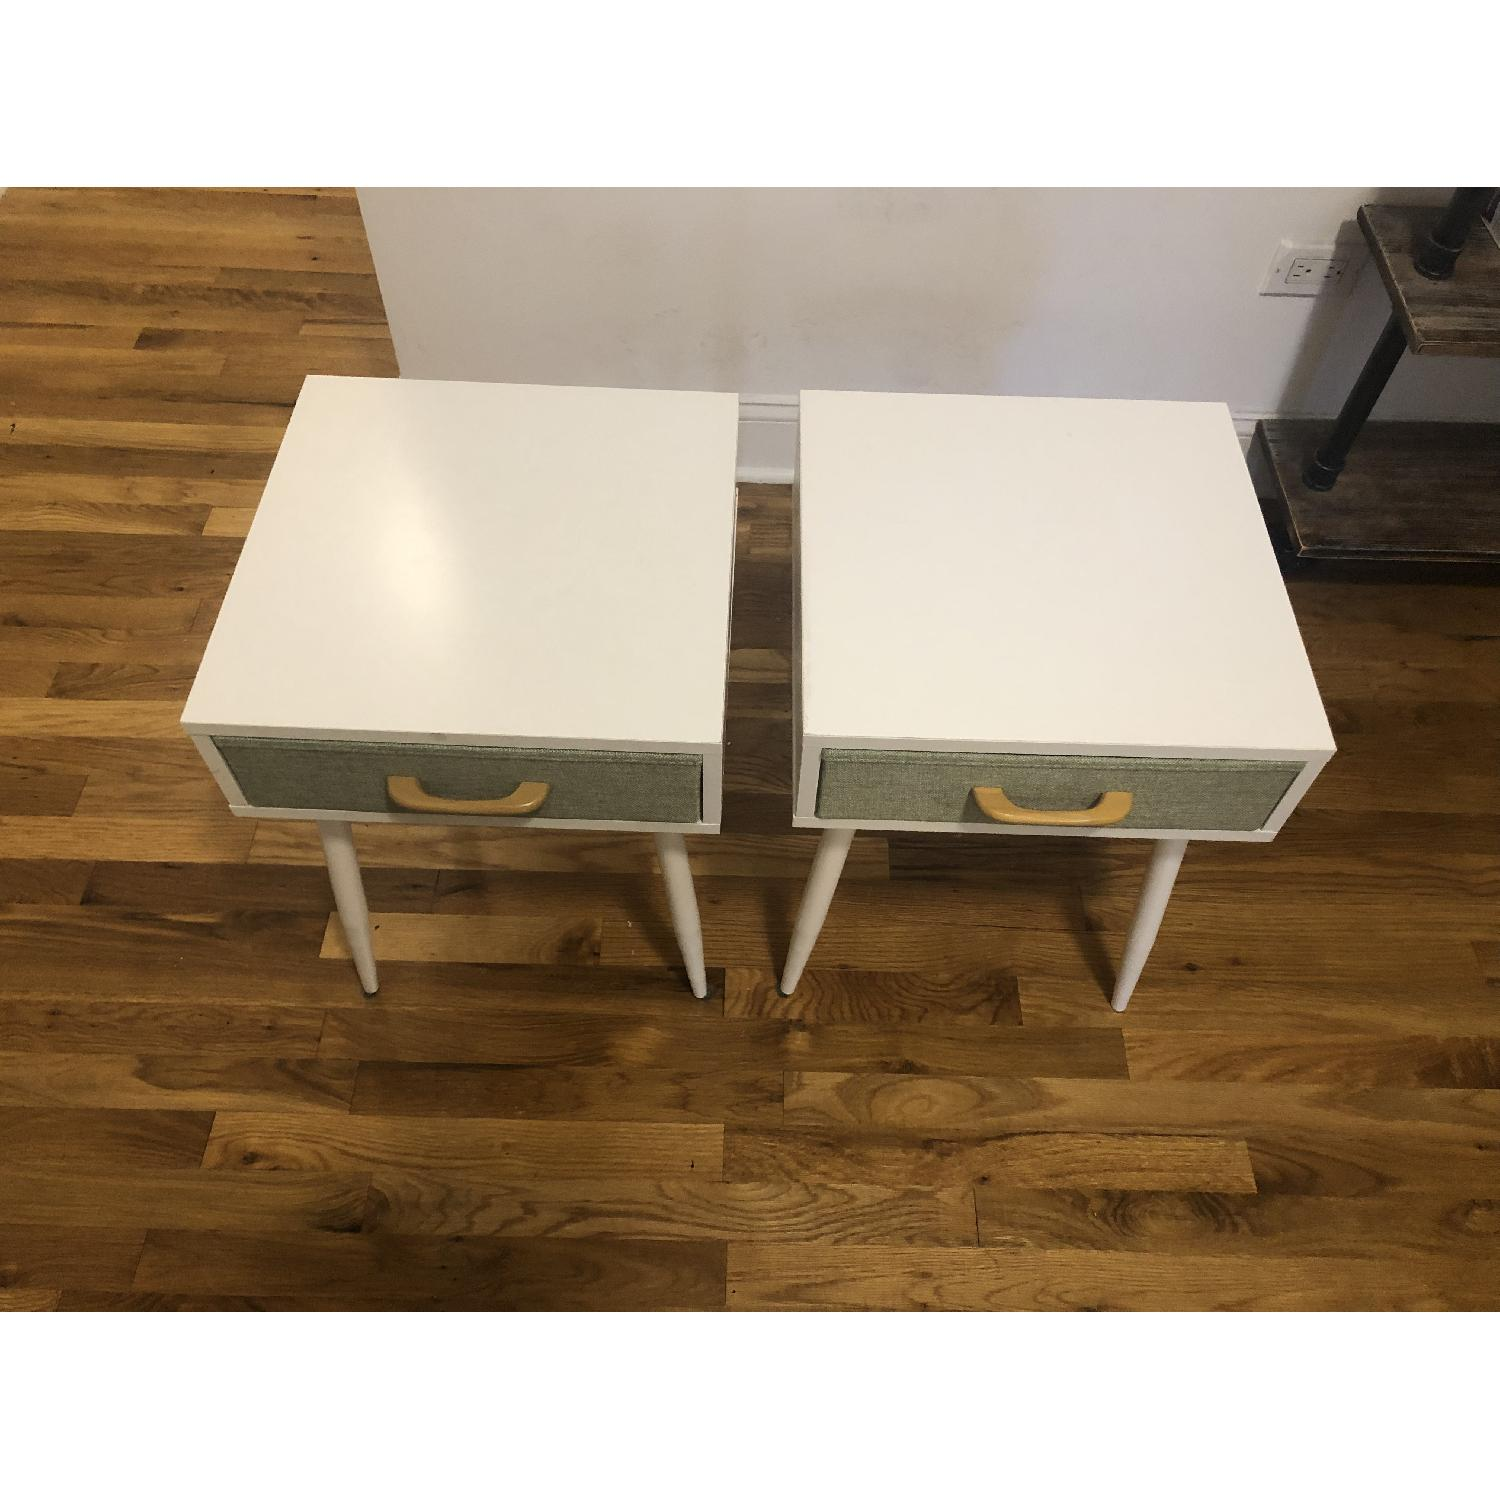 White & Green Nightstands - image-2